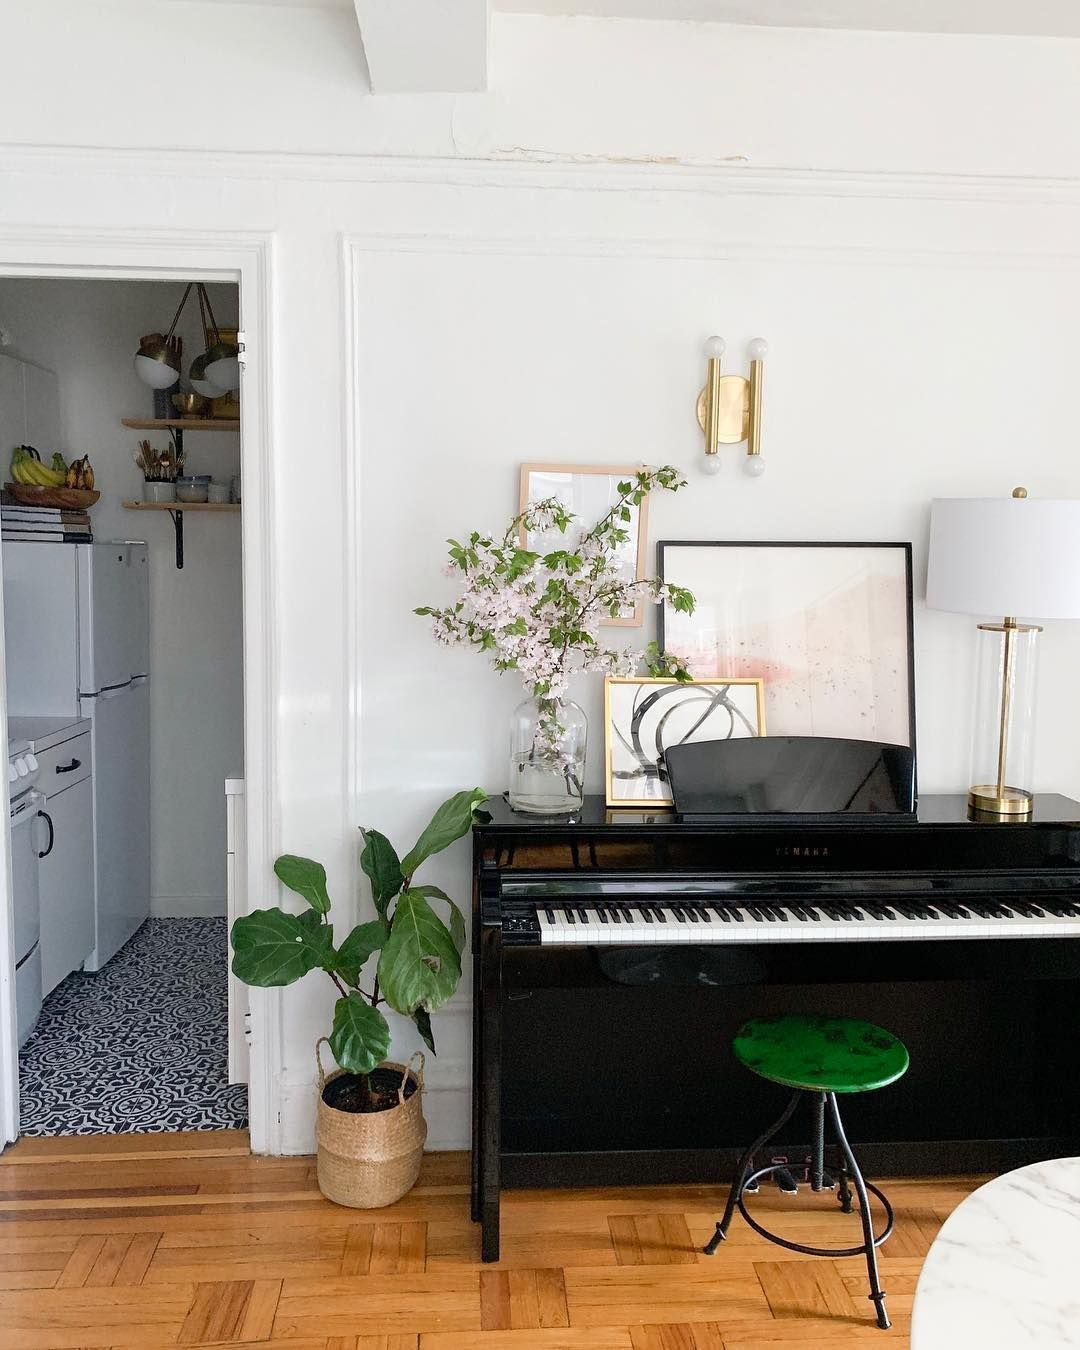 C R Y S T A L On Instagram We Almost Put A Buffet Cabinet Here And Then Tay Surprised Me With A Piano Piano Living Rooms Piano Room Decor Home Music Rooms Living room ideas piano